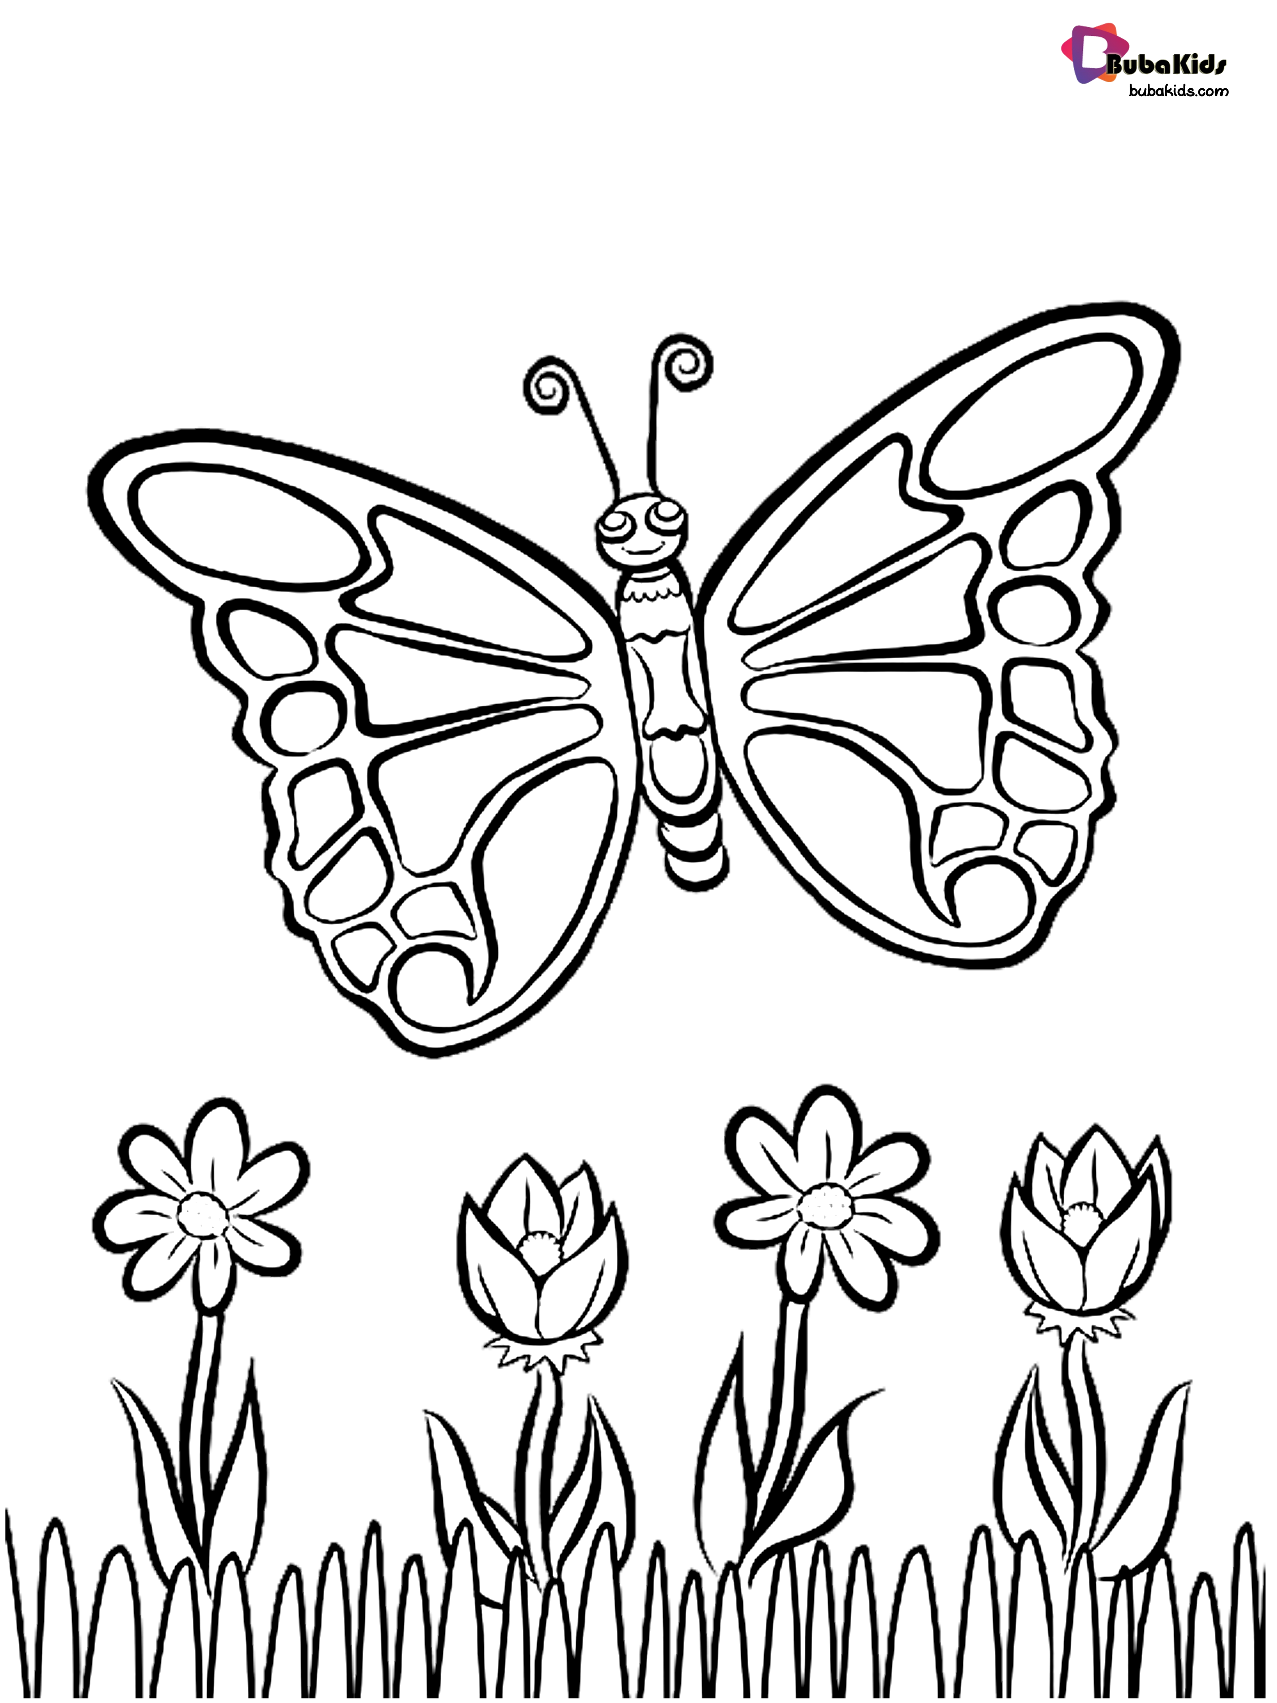 Beautiful Butterfly And Flowers Coloring Page Collection Of Animal Coloring Pages For Teenage Print Beautiful Butterflies Animal Coloring Pages Coloring Pages